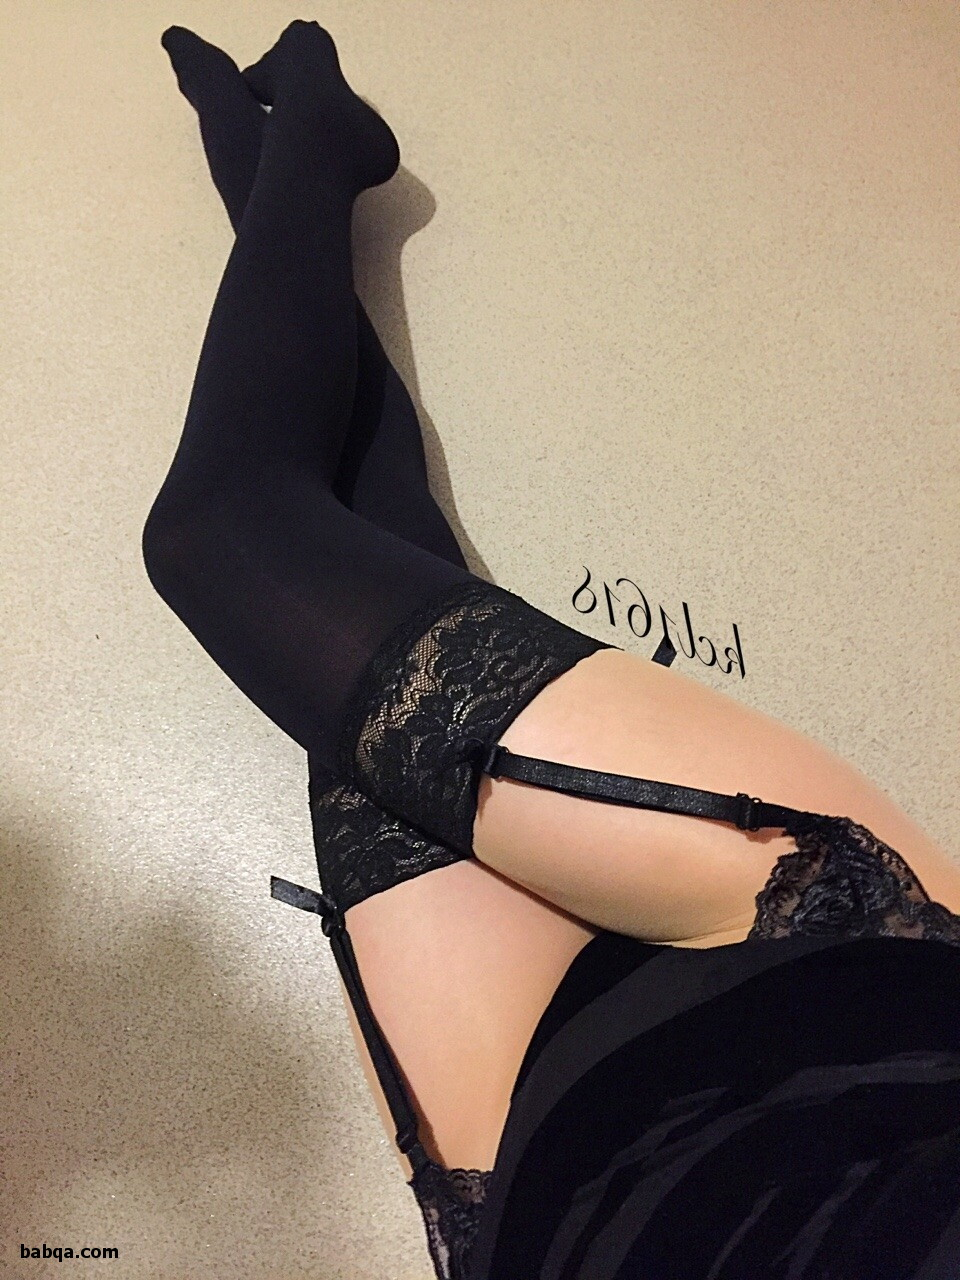 cute girl lingerie and victoria secret stockings